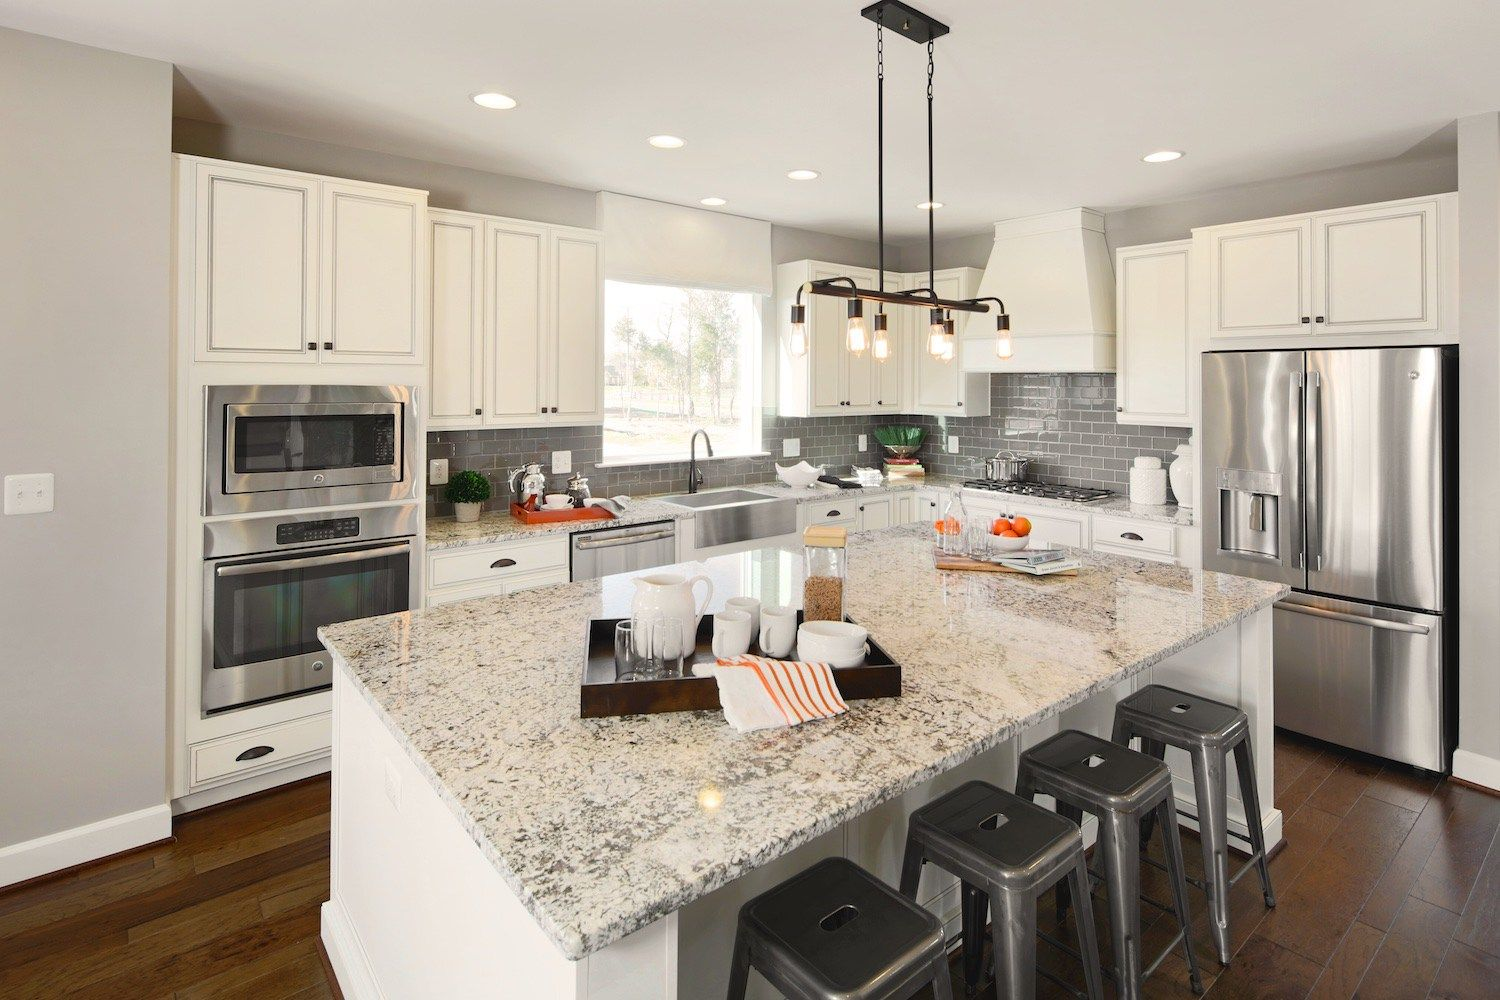 Beautiful white and gray kitchen with granite countertops